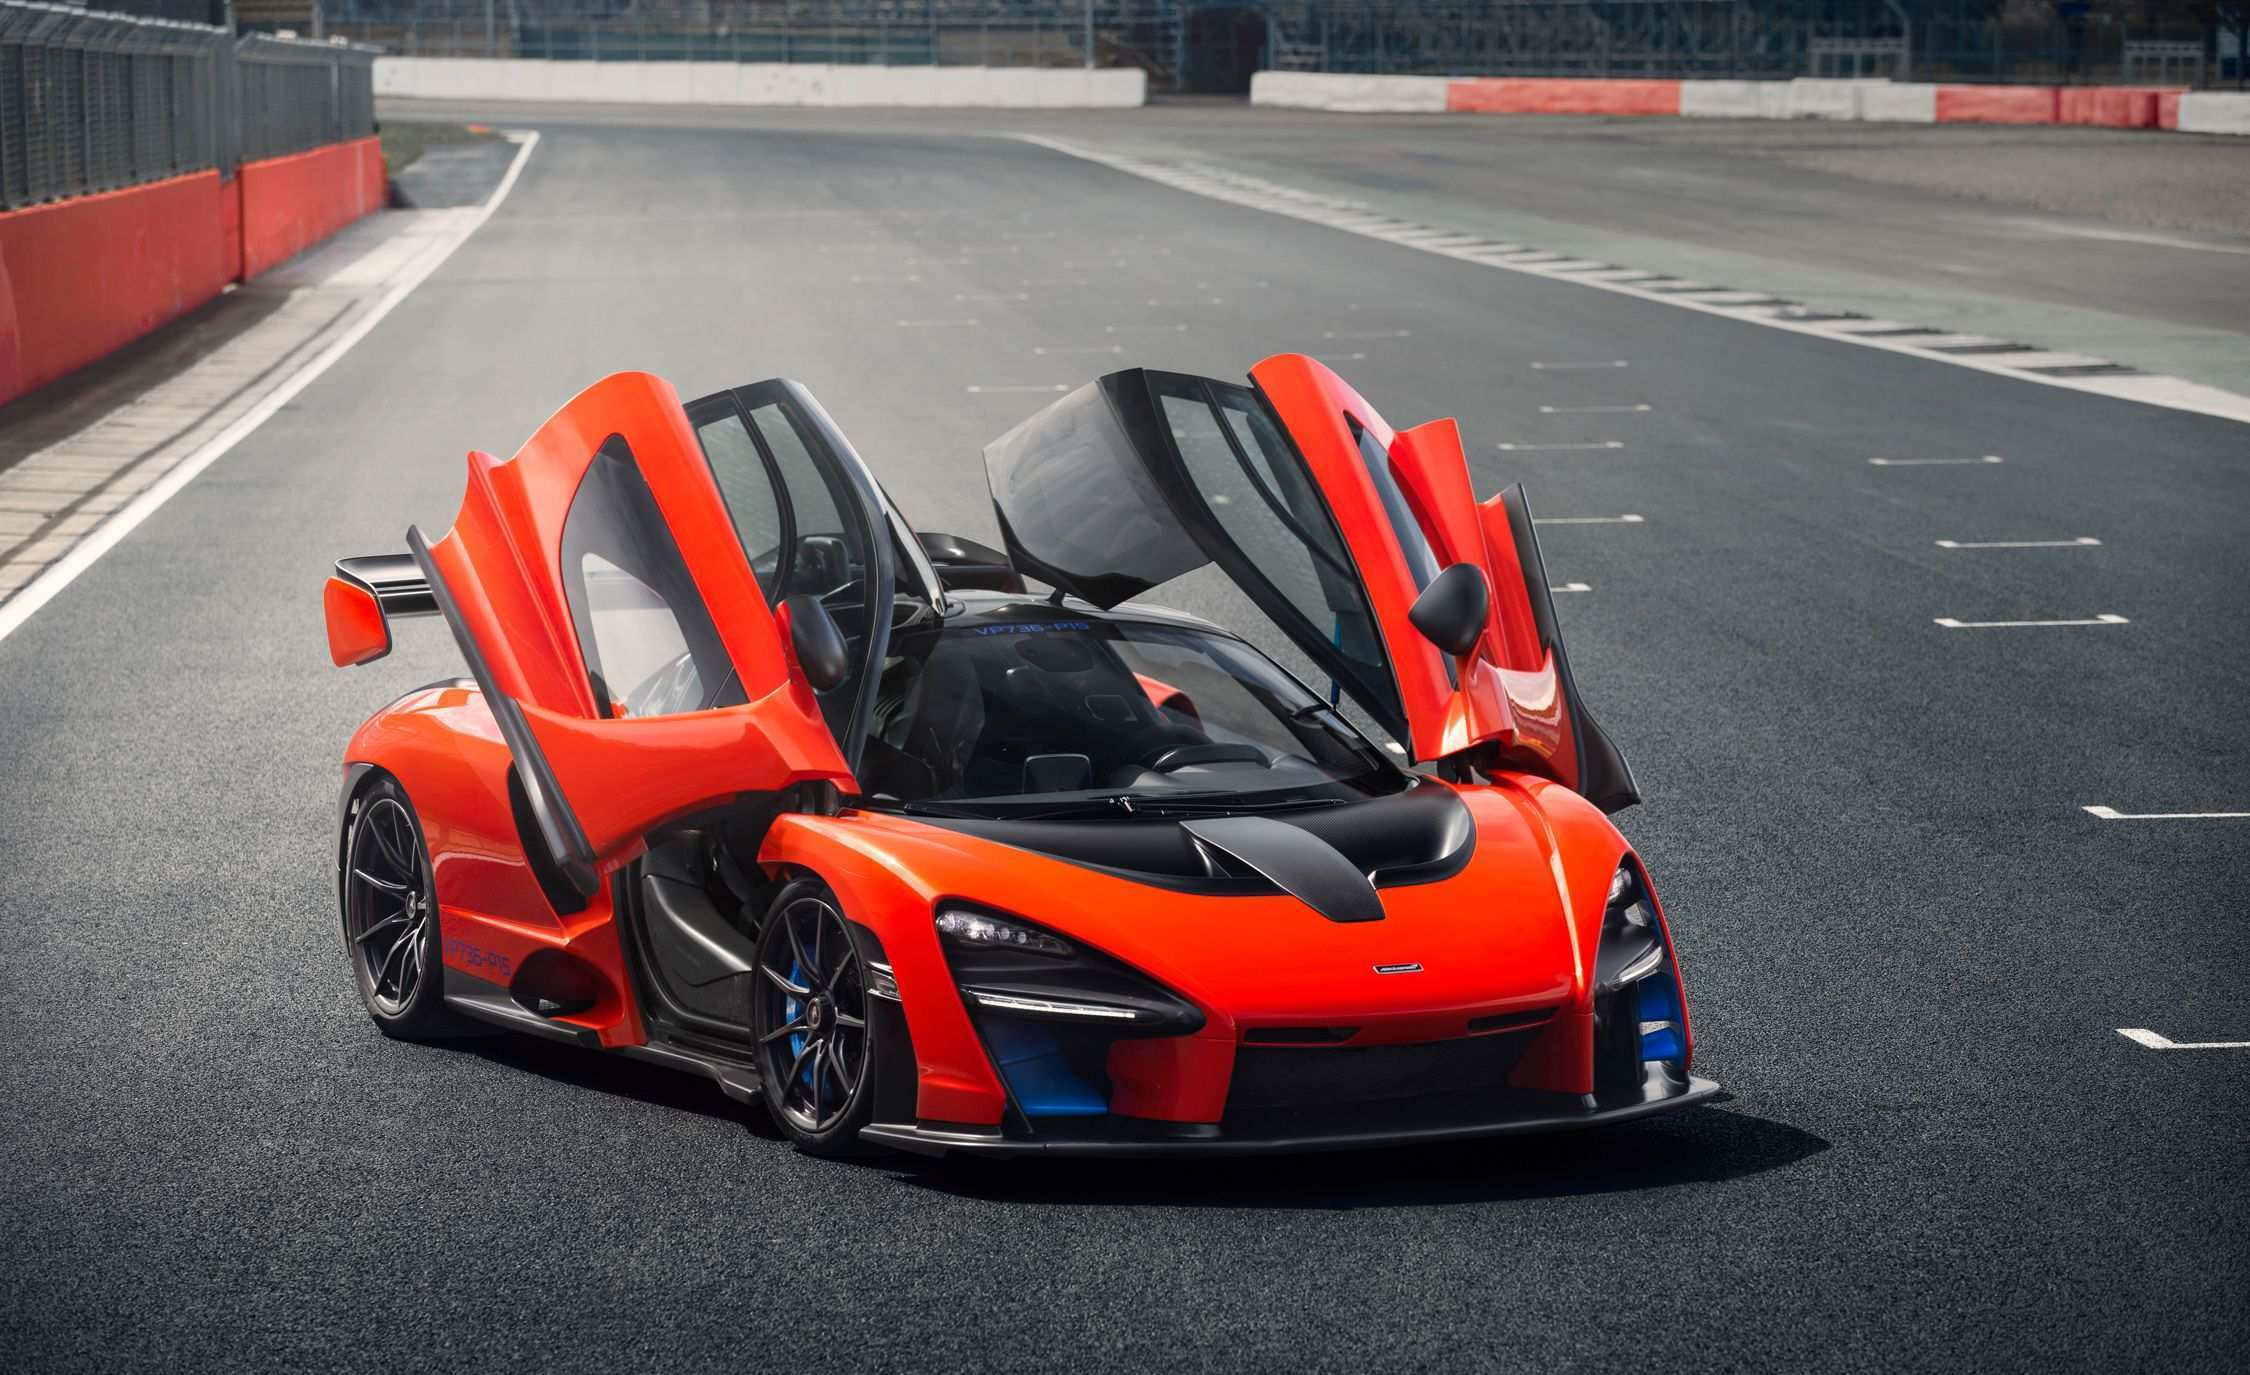 63 All New 2019 Mclaren New Review for 2019 Mclaren